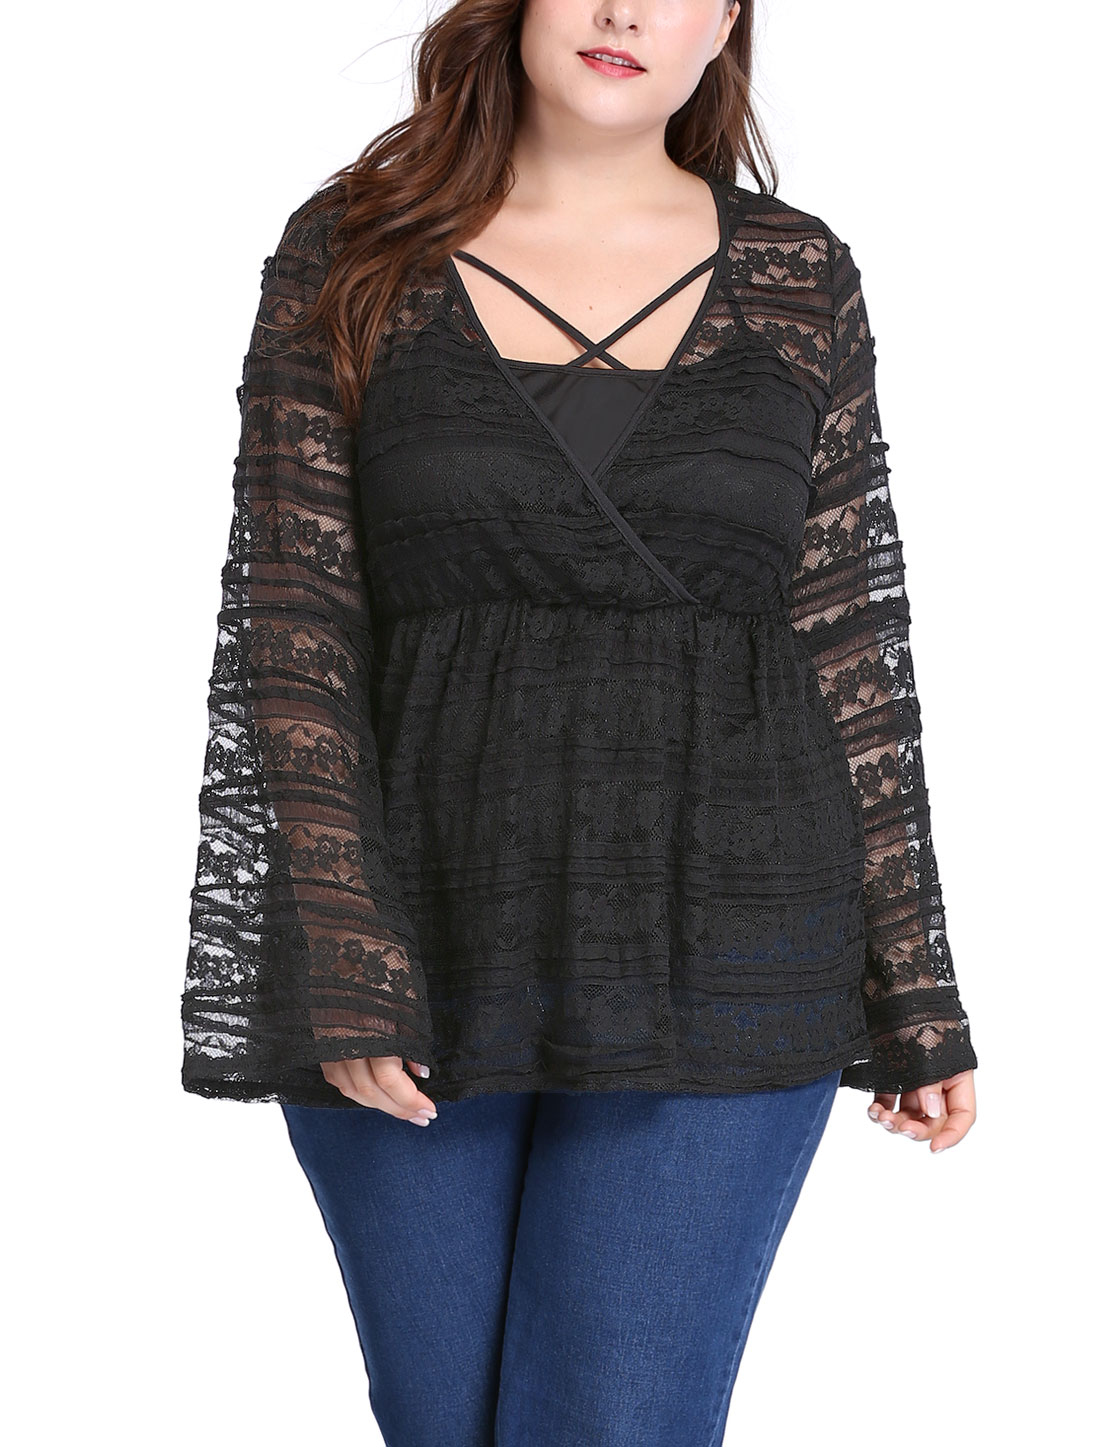 Women Plus Size Bell Sleeves Sheer Lace Babydoll Top w Camisole Sets Black 1X